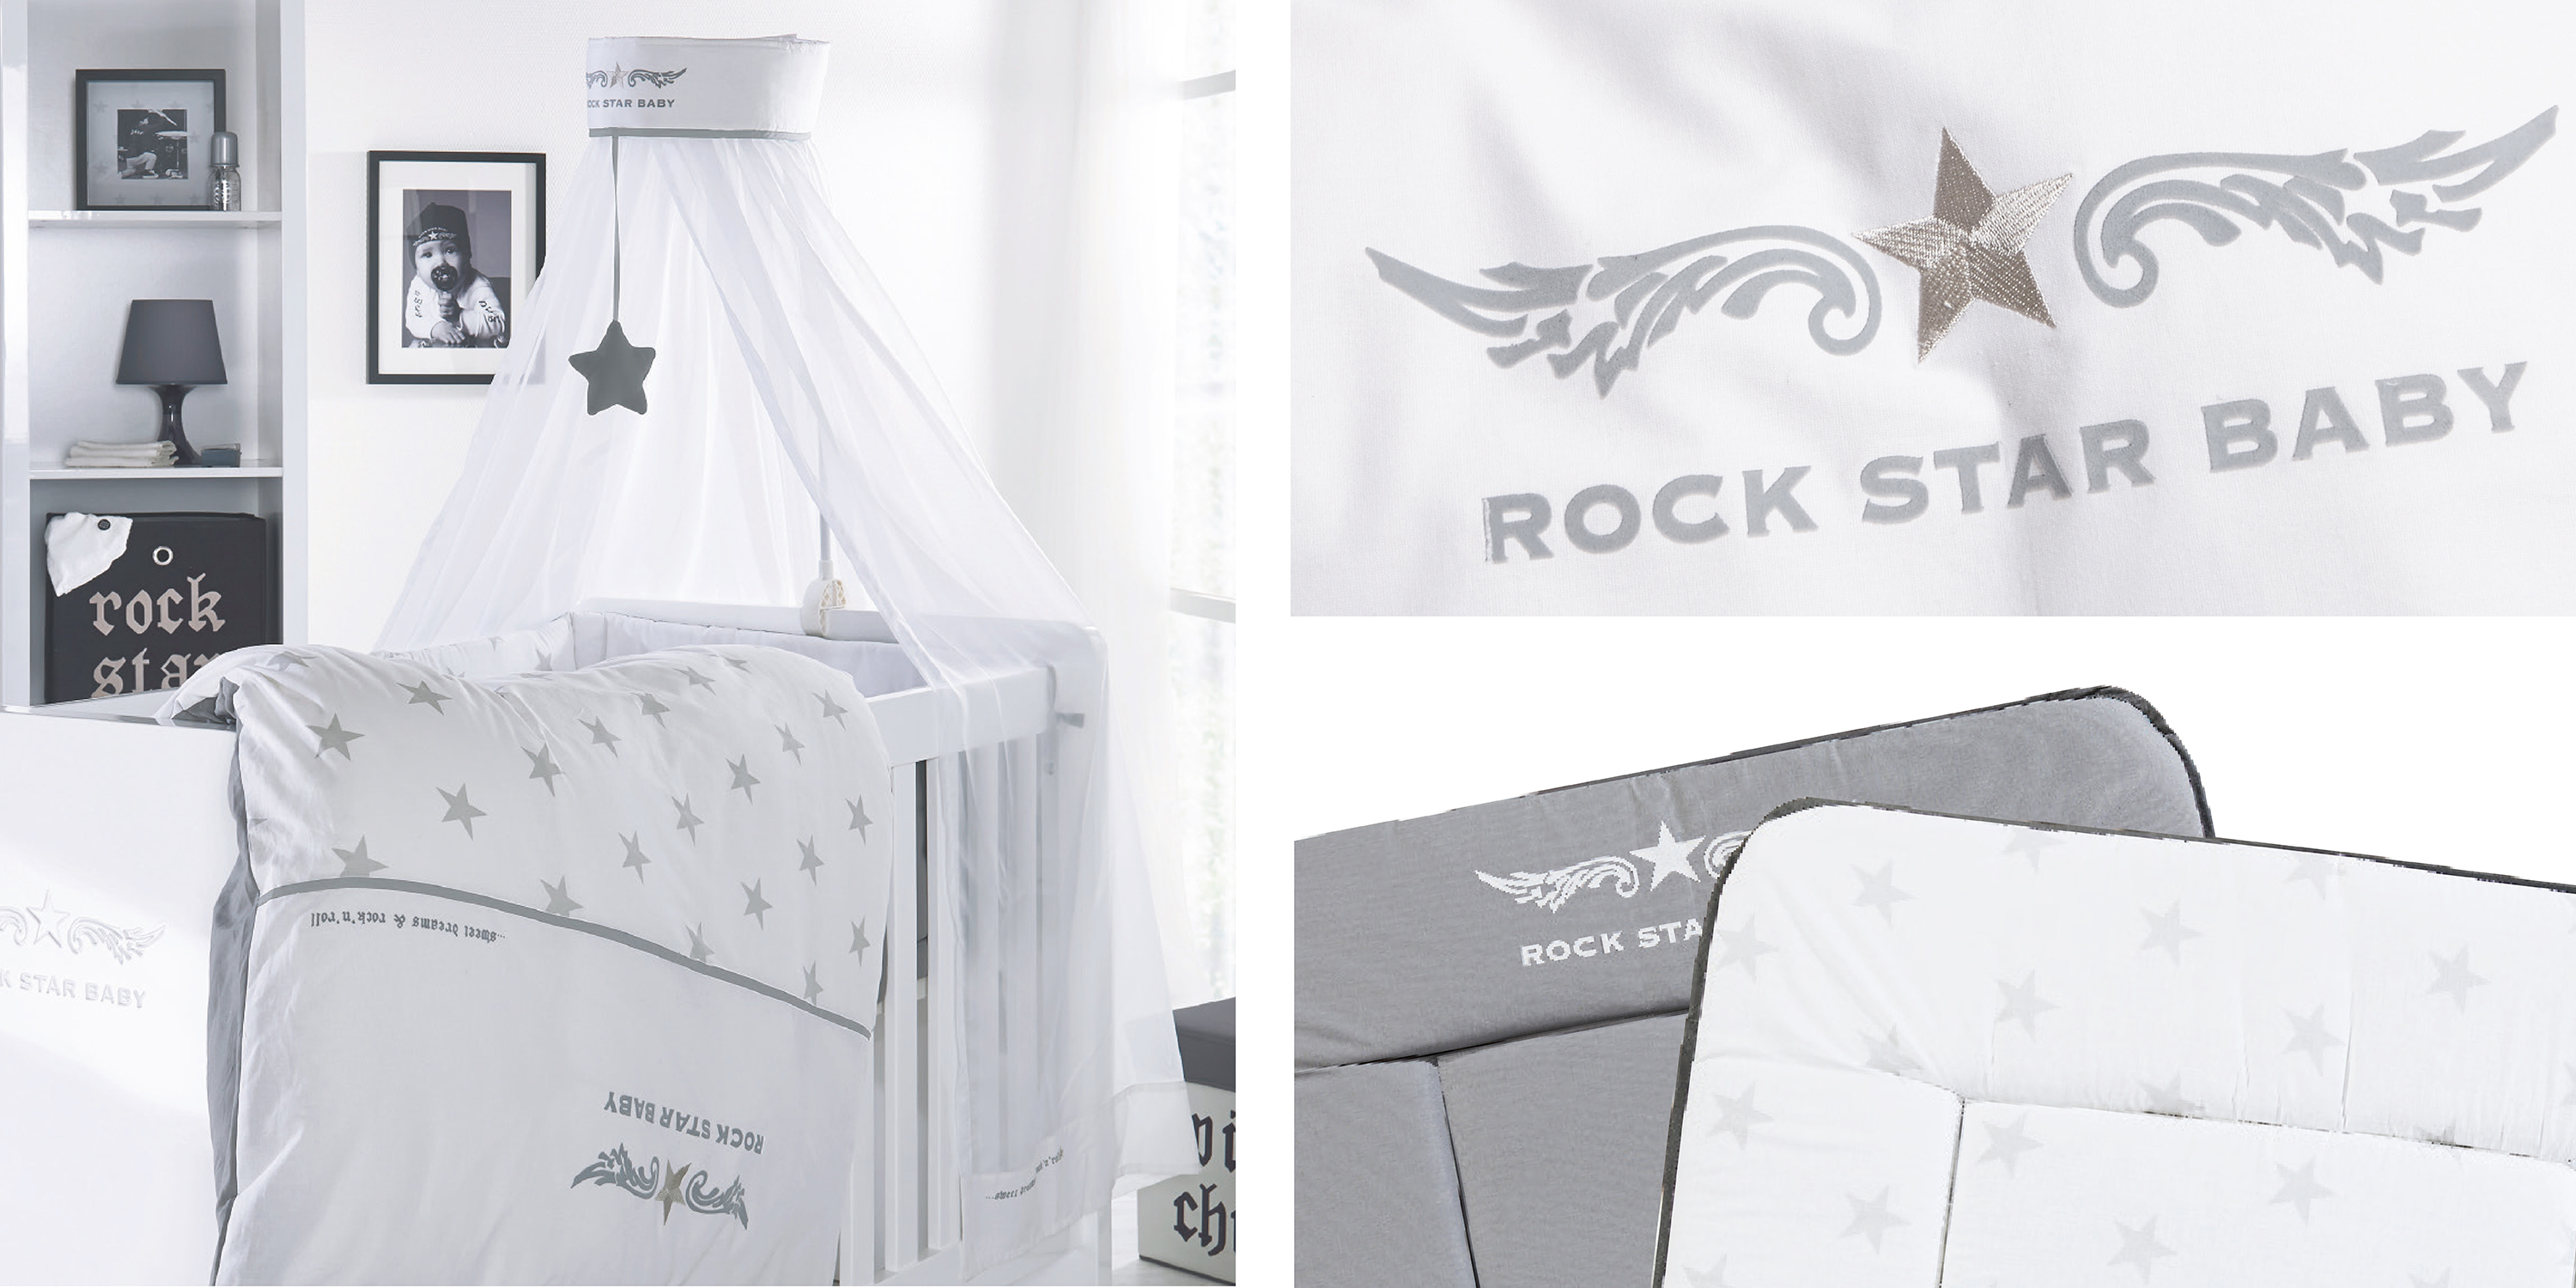 Amazon.es: roba Baumann GmbH: Rock Star Baby 2